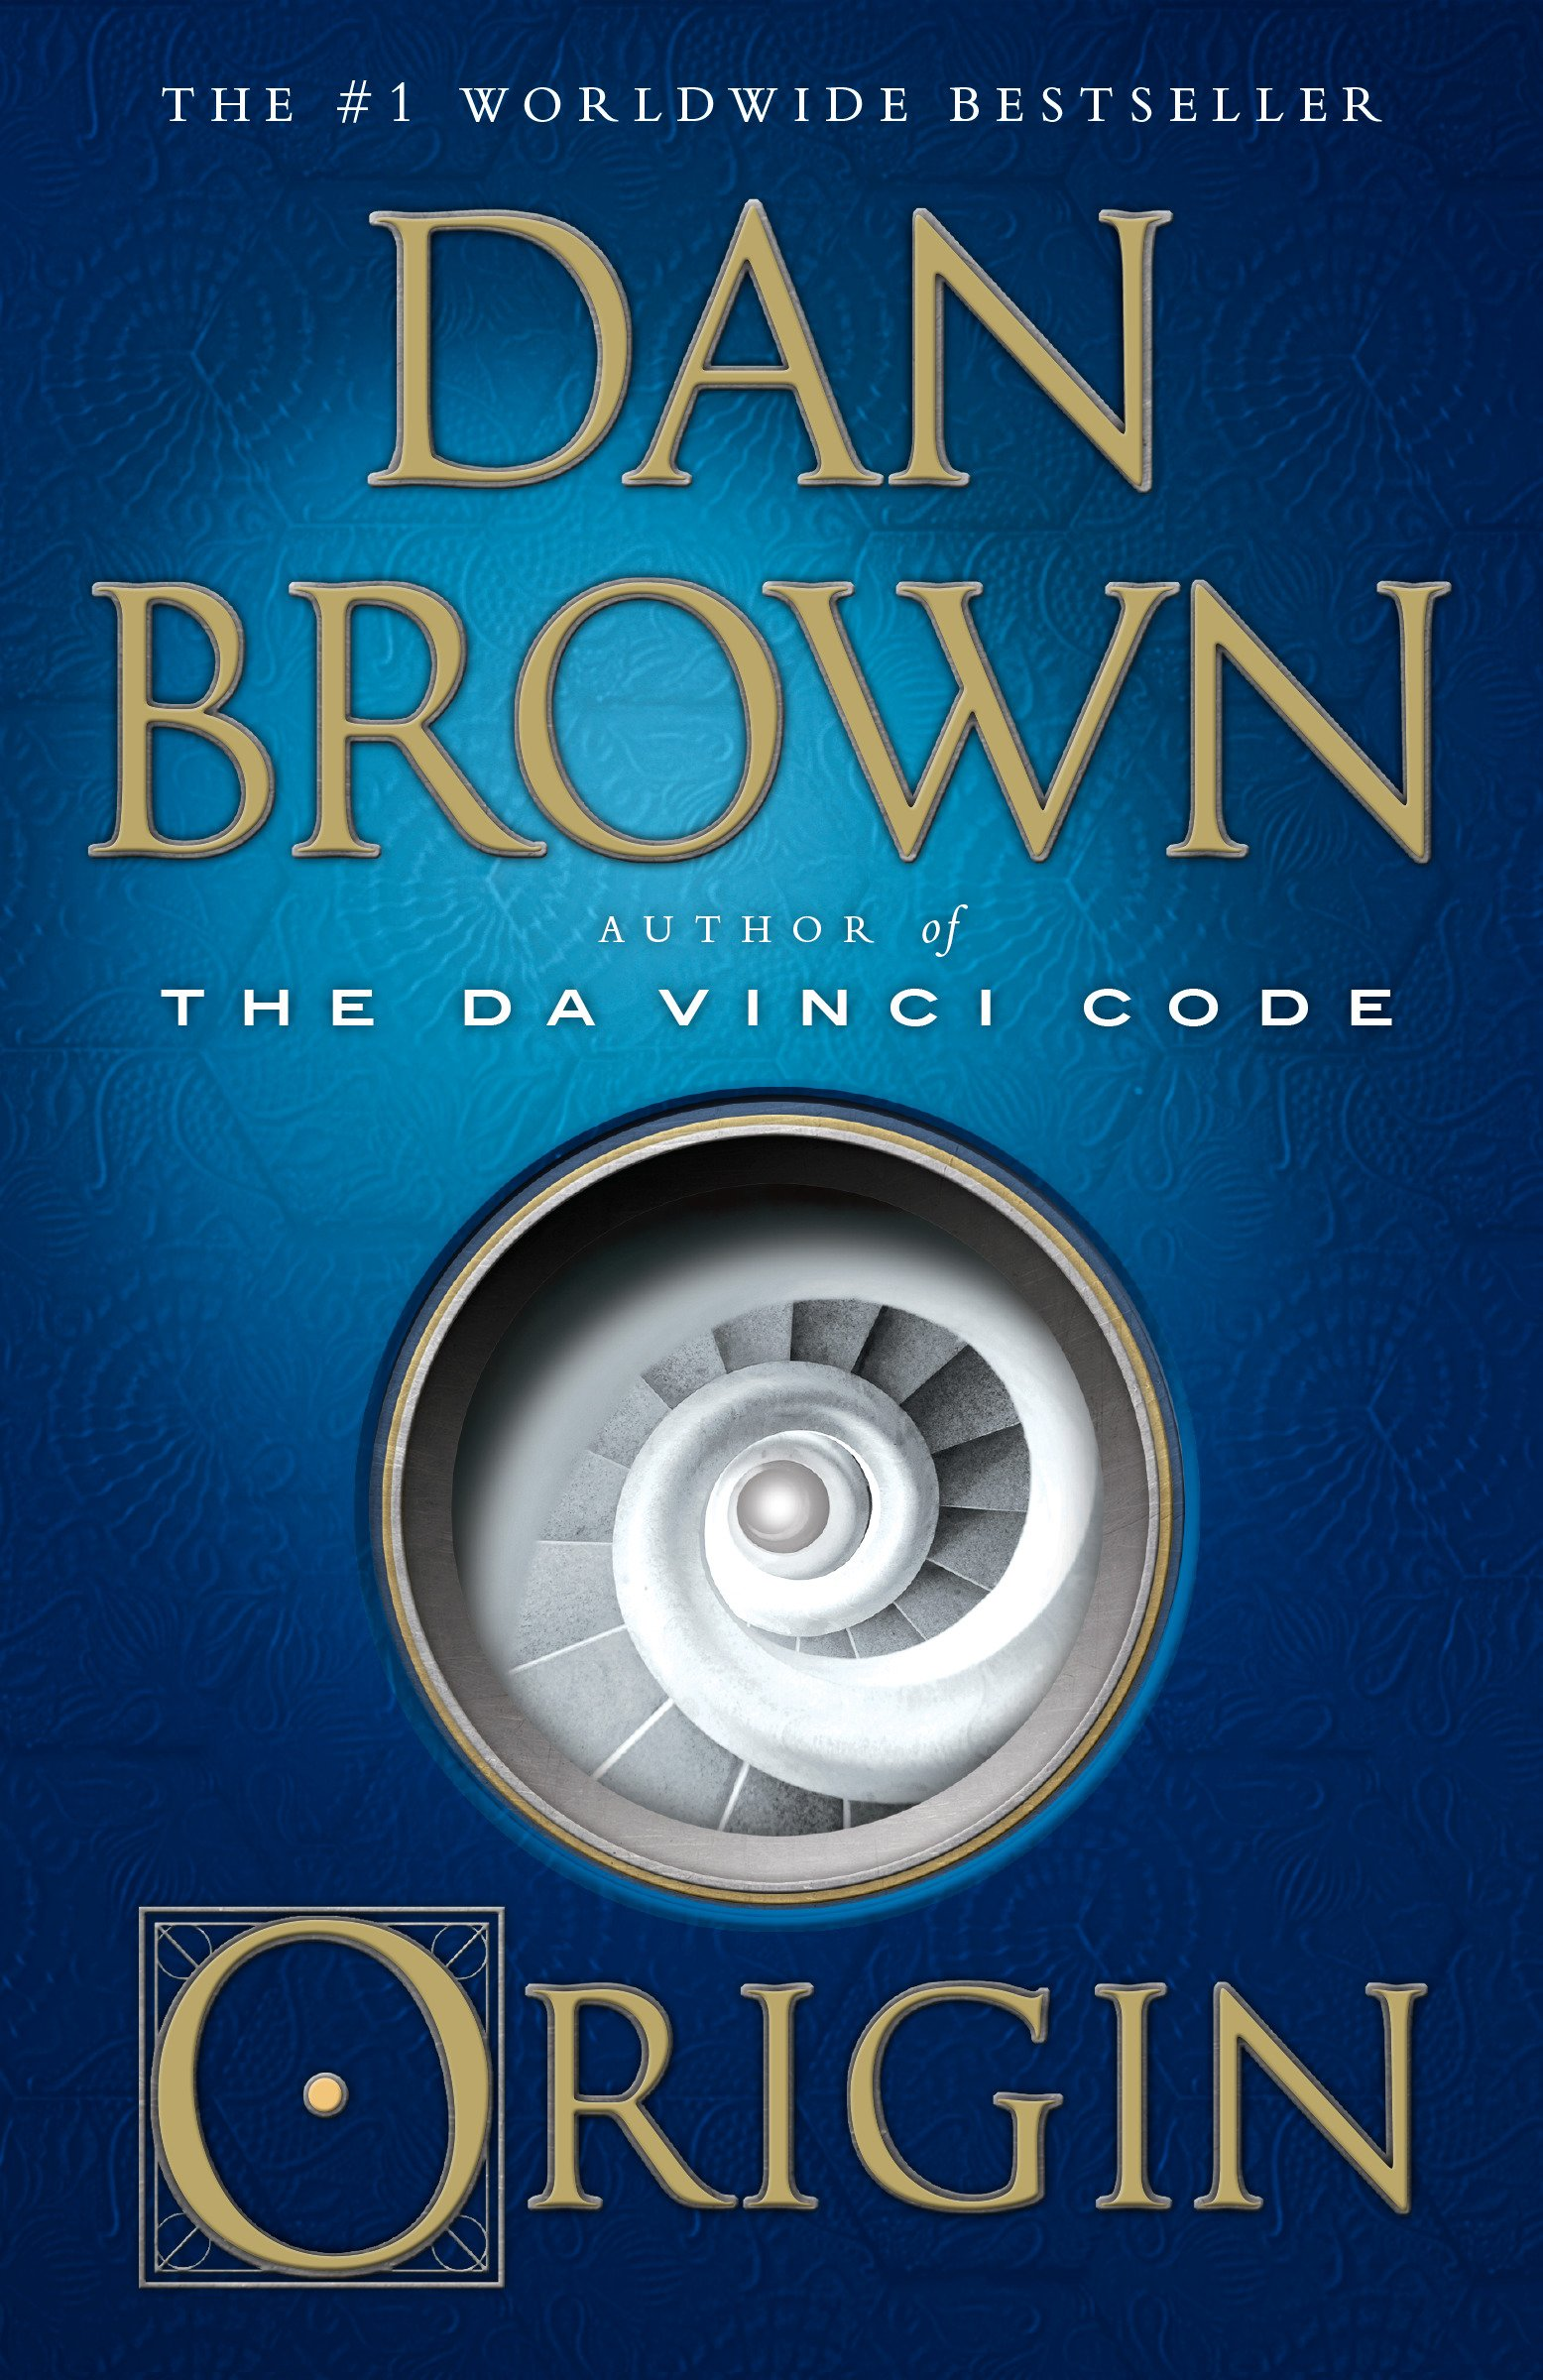 Origin a novel robert langdon kindle edition by dan brown origin a novel robert langdon kindle edition by dan brown literature fiction kindle ebooks amazon fandeluxe Images